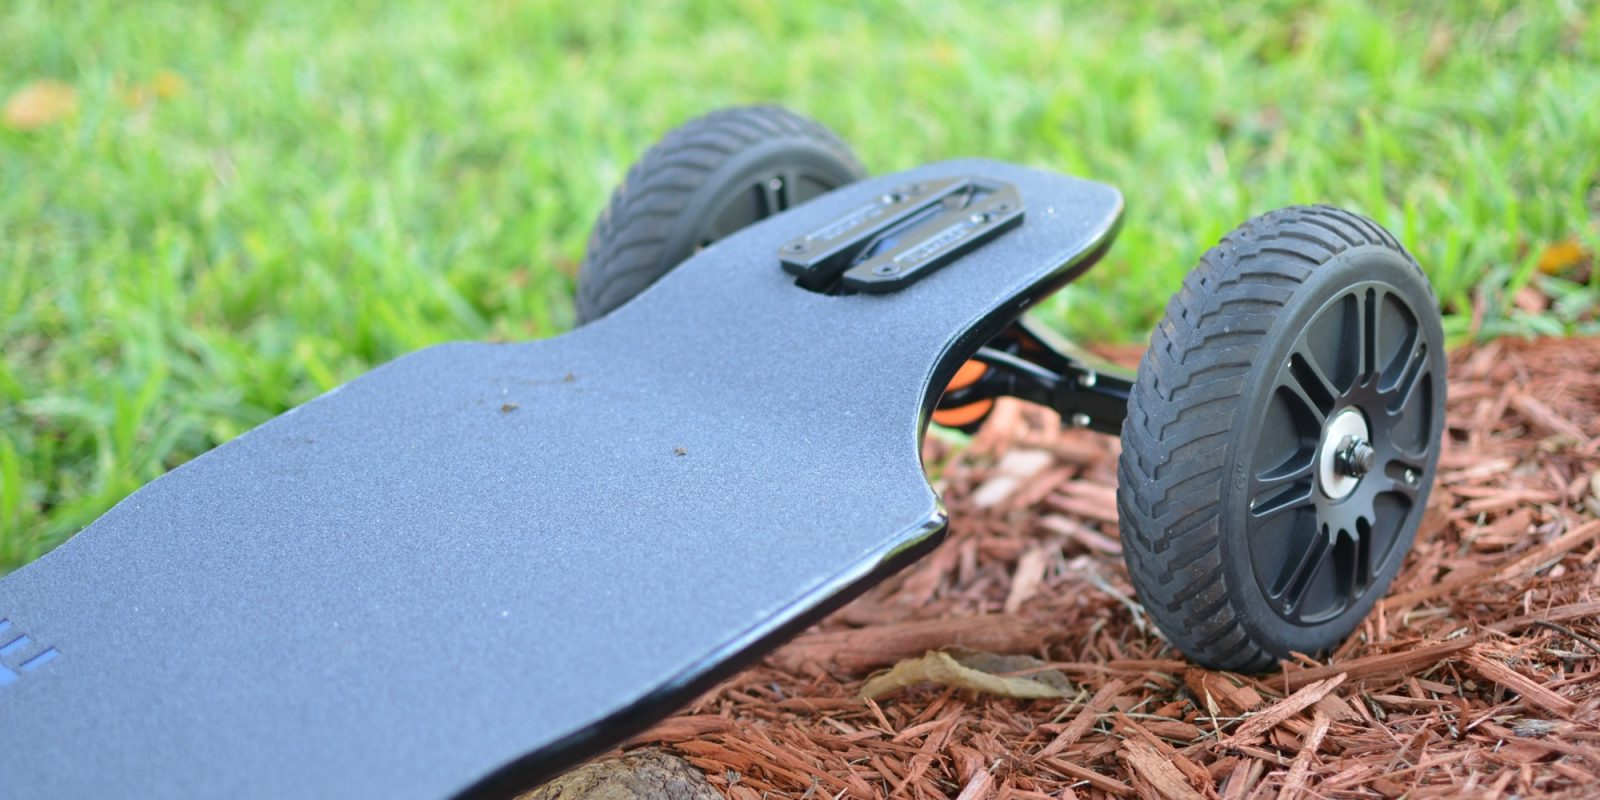 Review: Backfire Ranger X2 all terrain electric skateboard – a thrill on wheels